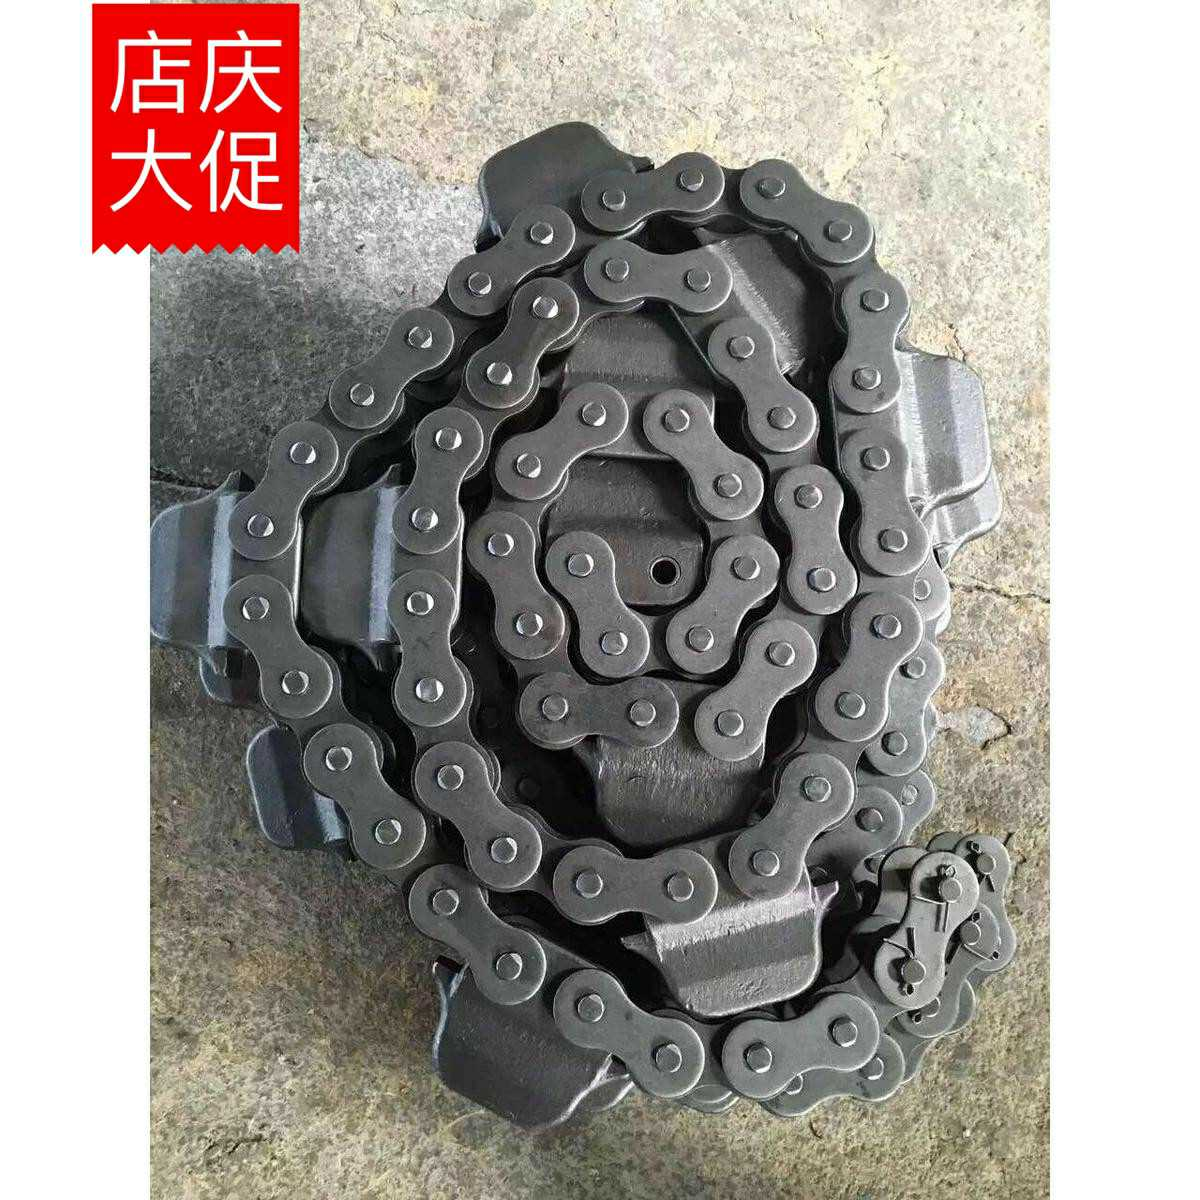 Factory direct hanging conveyor drive chain 458 drive chain conveyor accessories